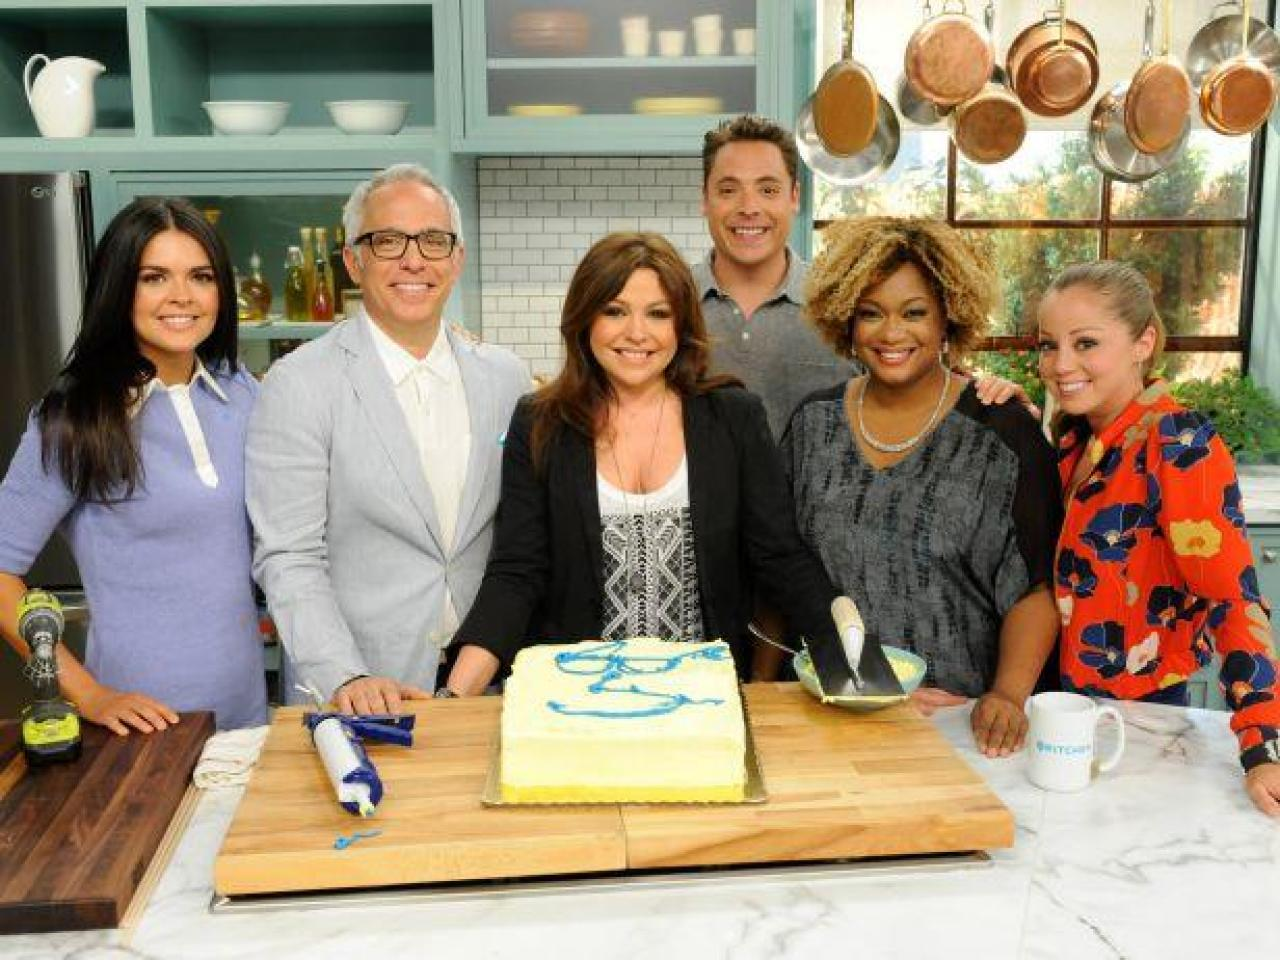 The Kitchen Food Network Celebrating Father's Day With Rachael Ray On The Kitchen And A